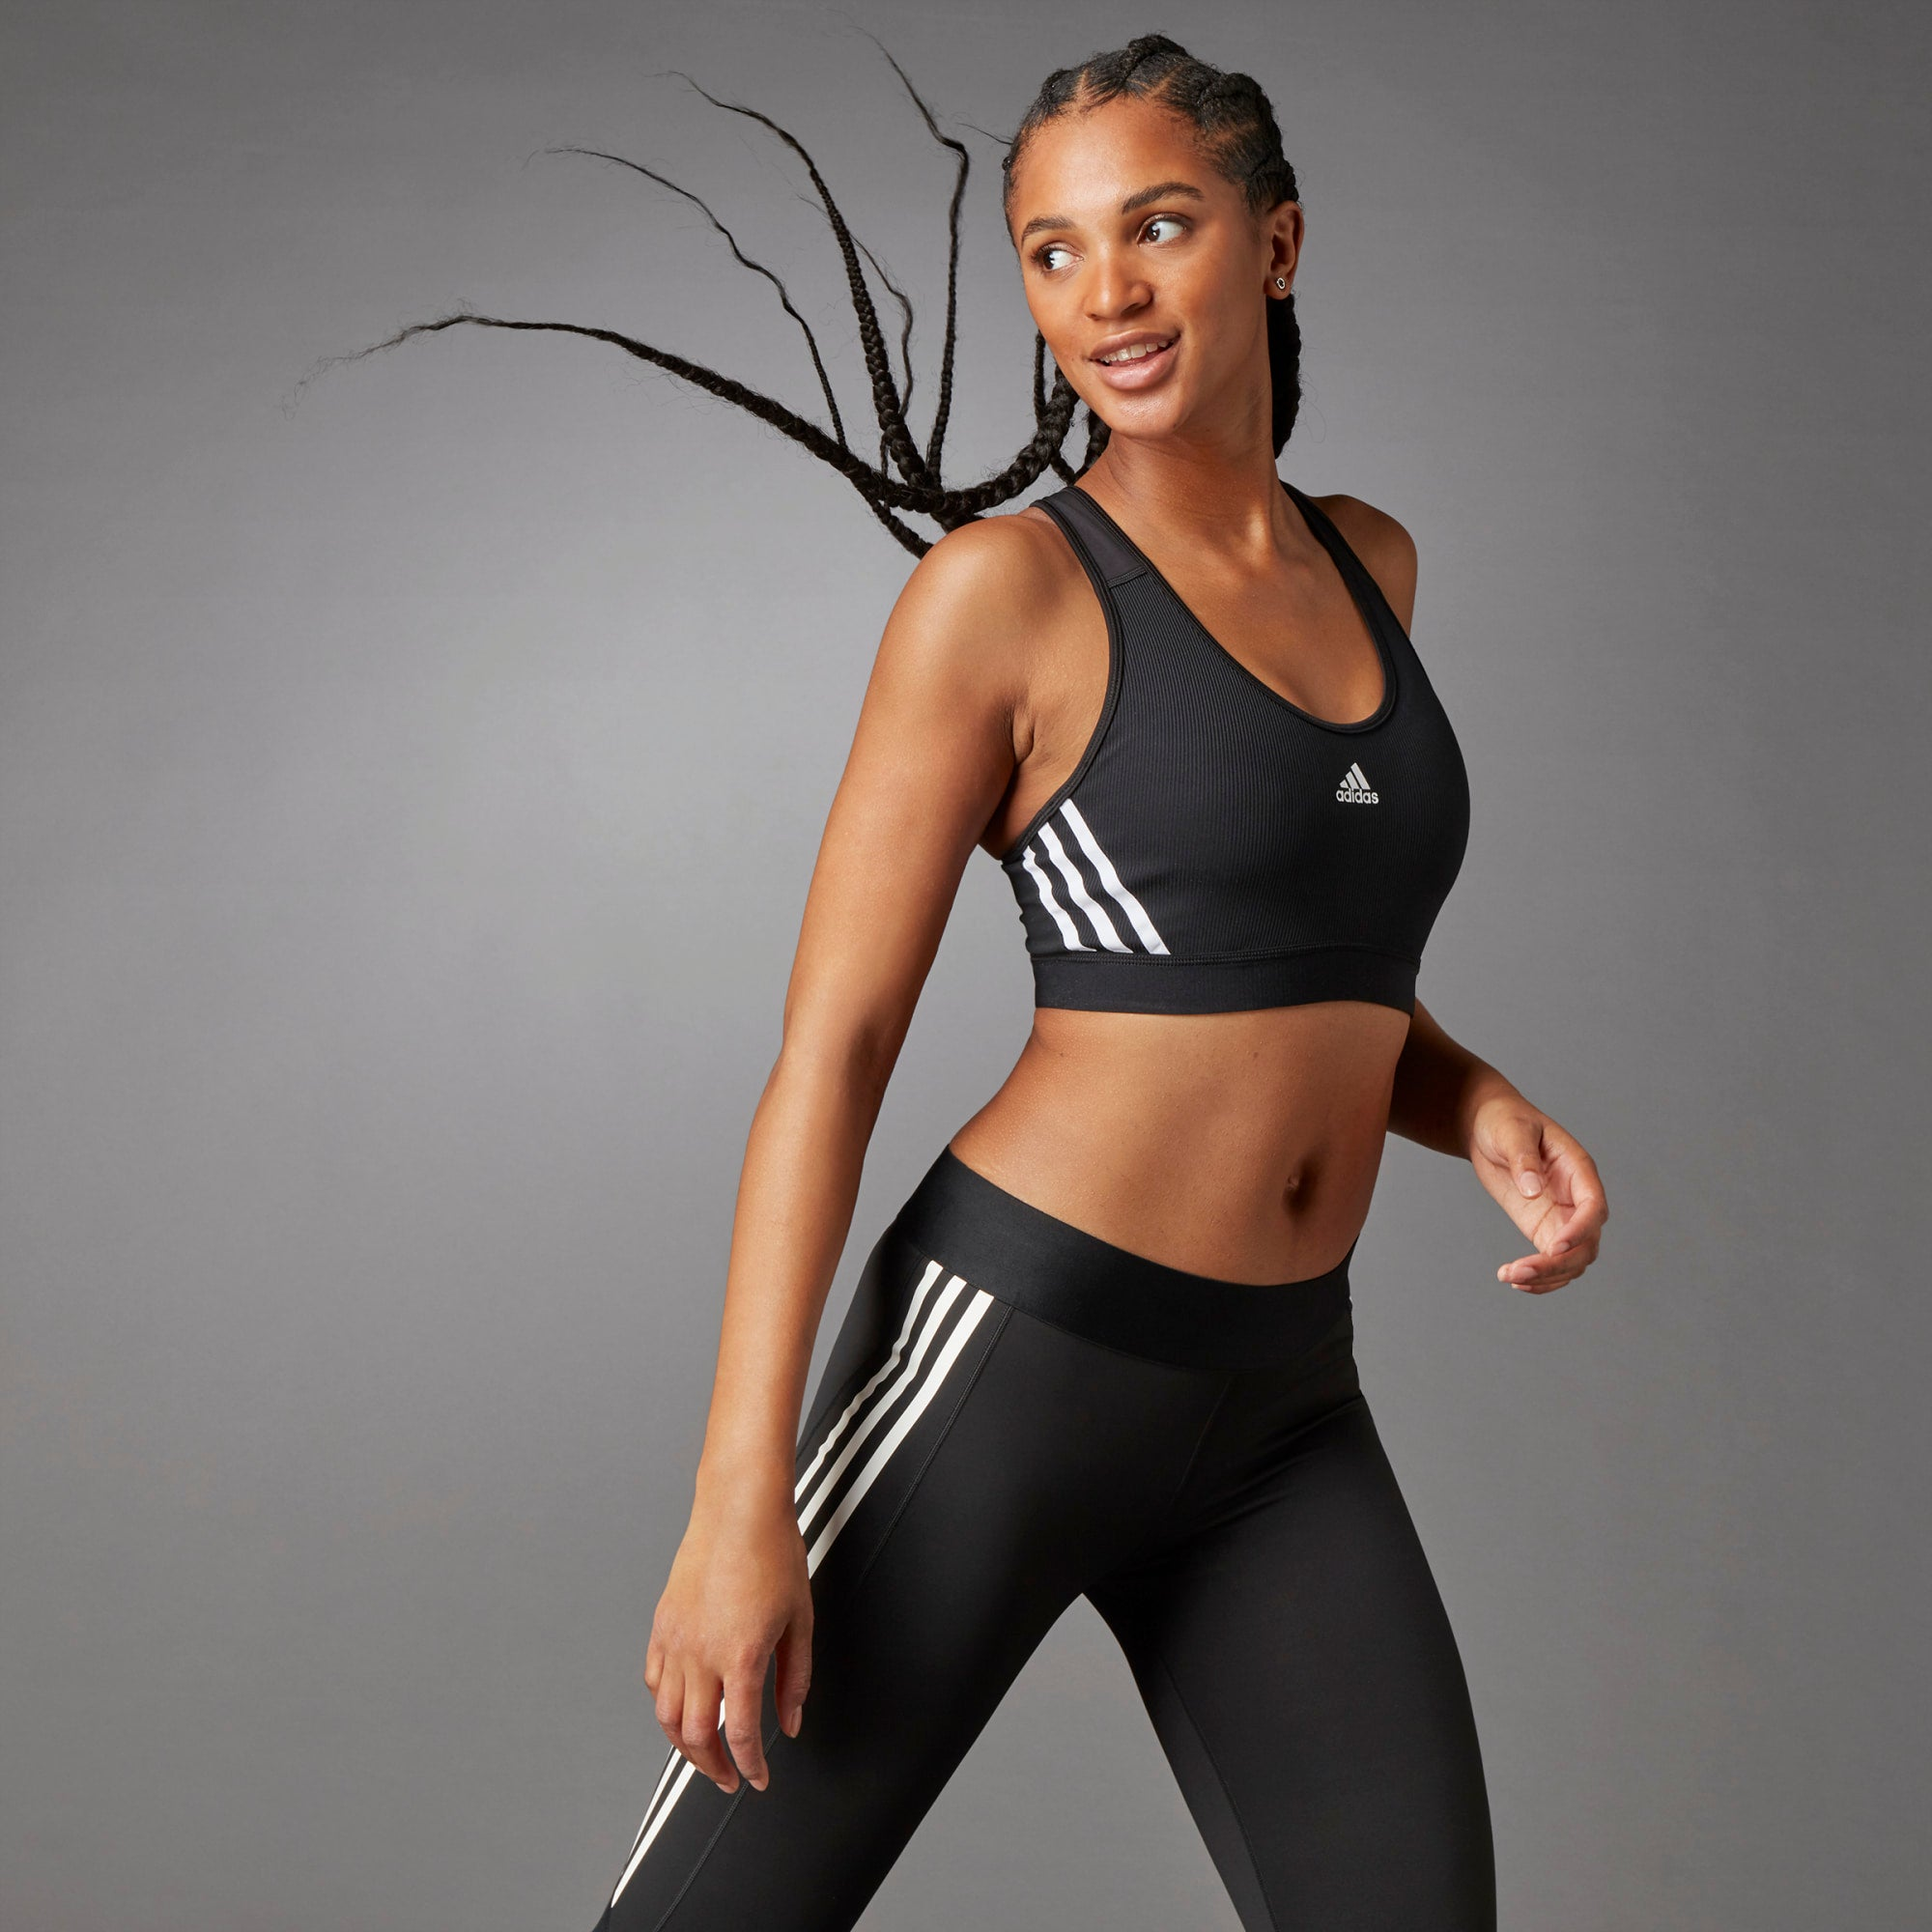 Adidas Believe This 3-Stripes Ribbed Bra - Black